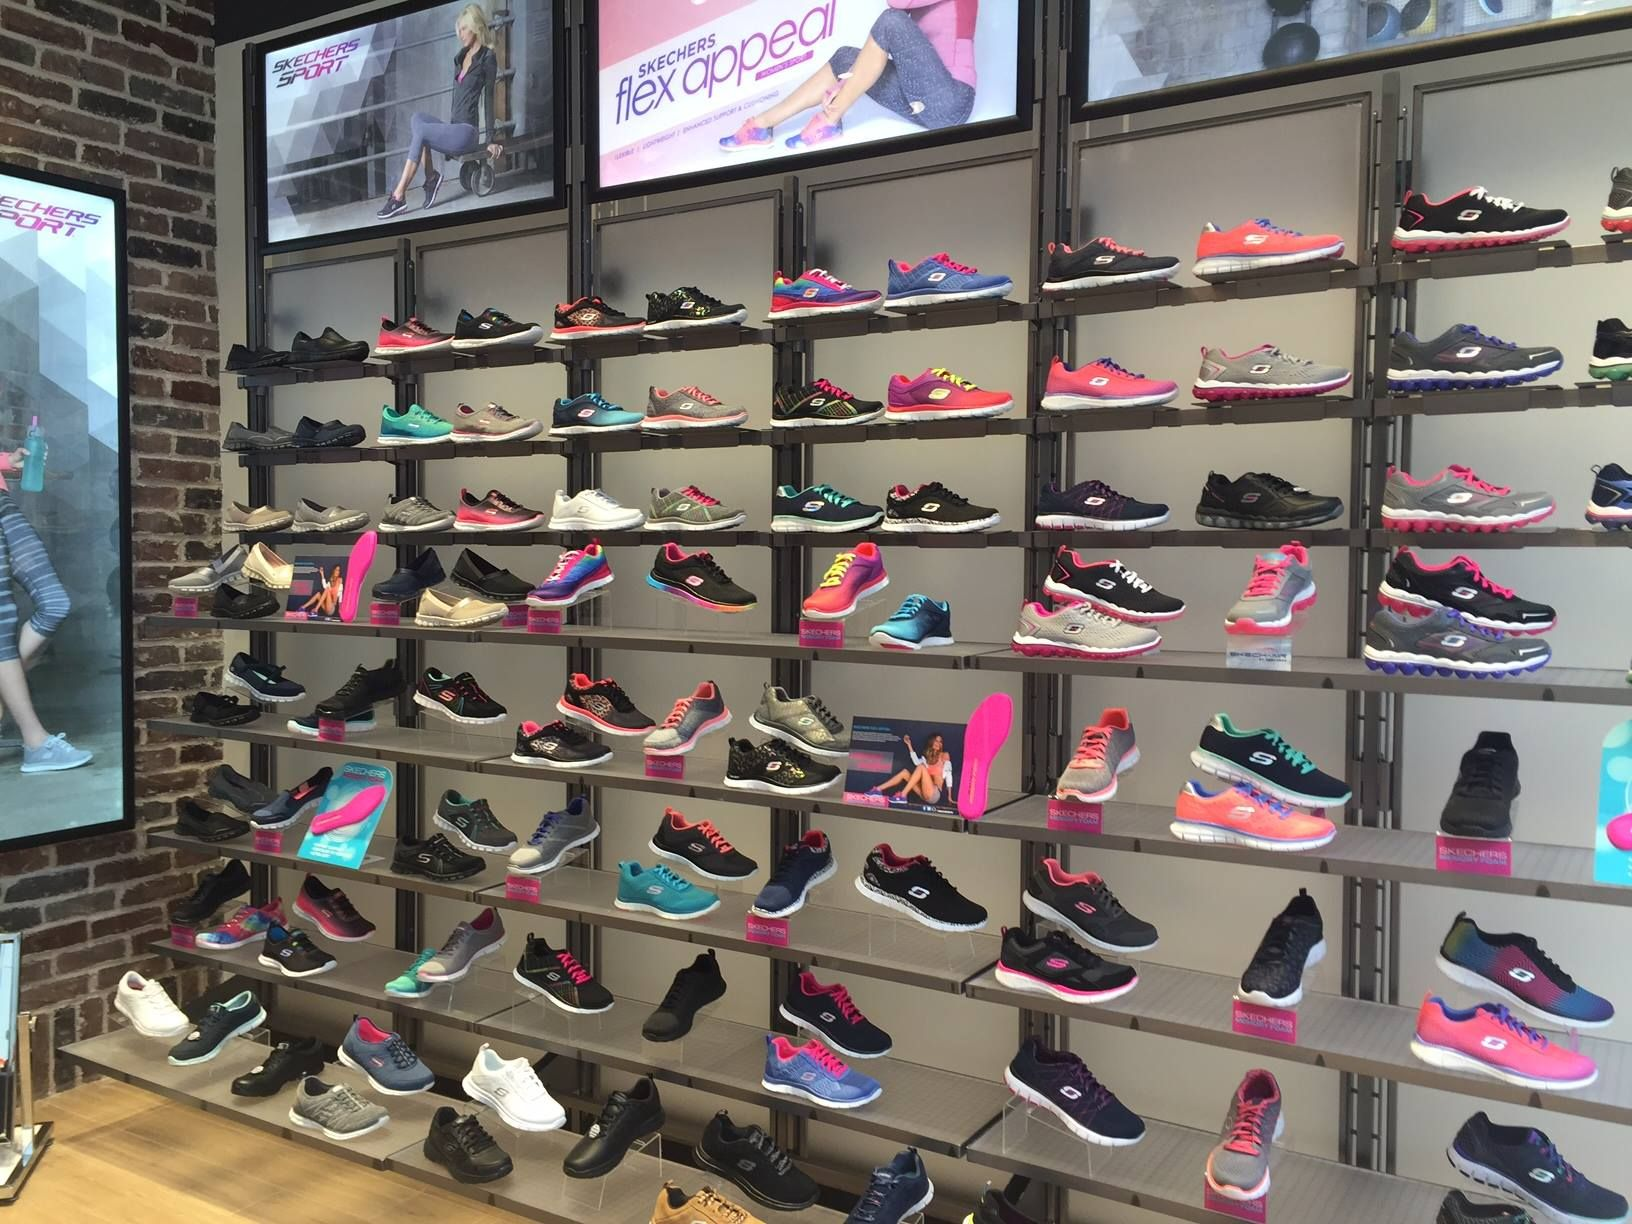 Skechers Istanbul Shop Interior Shopping Skechers